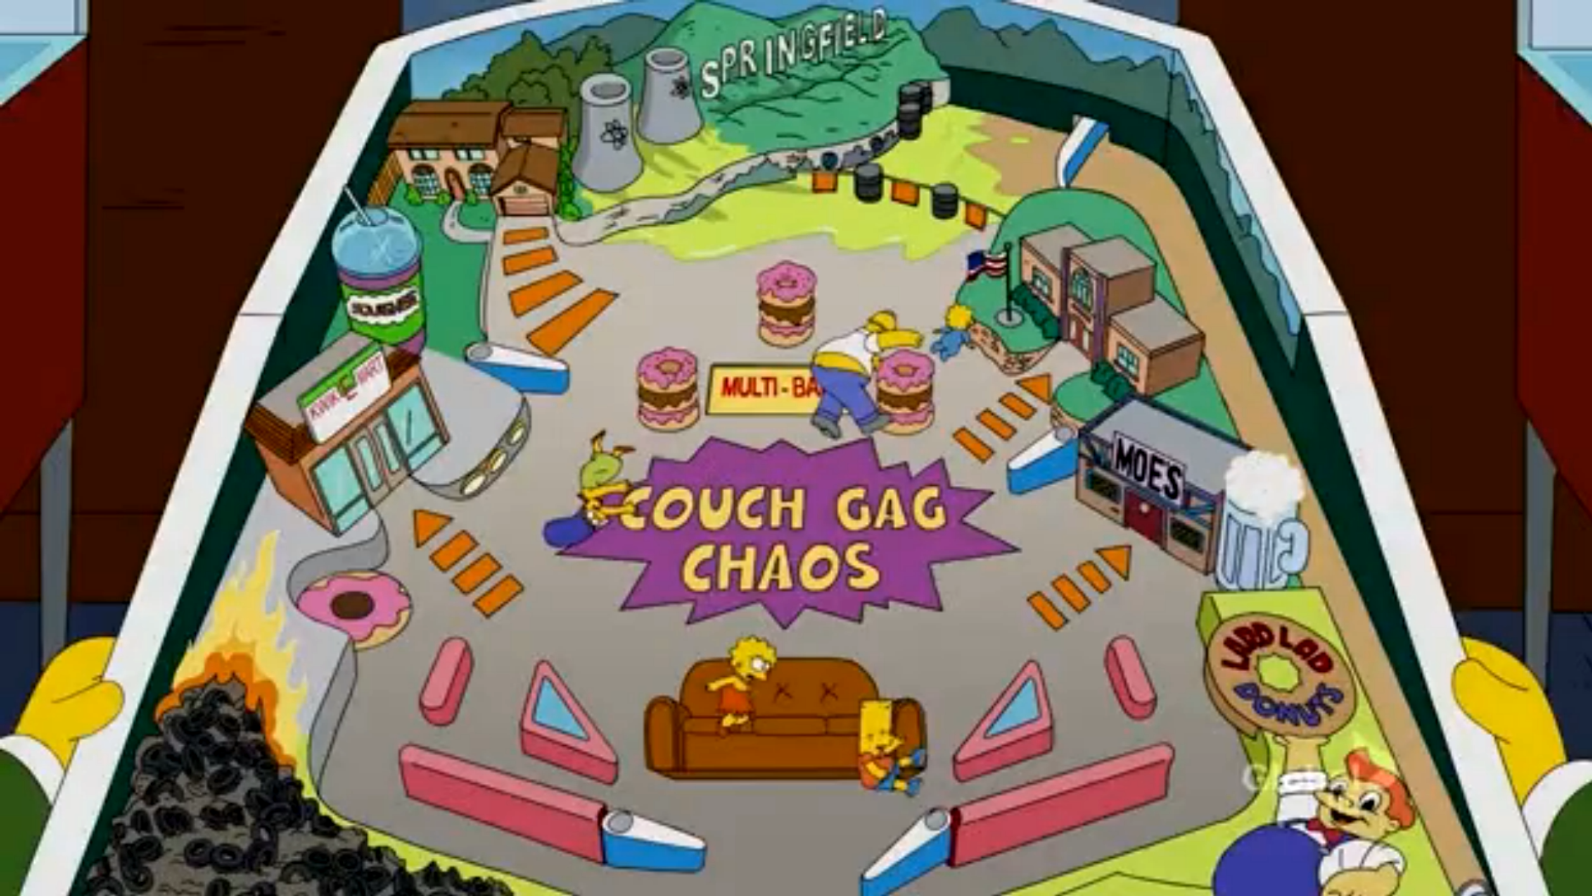 Couch Gag Chaos couch gag